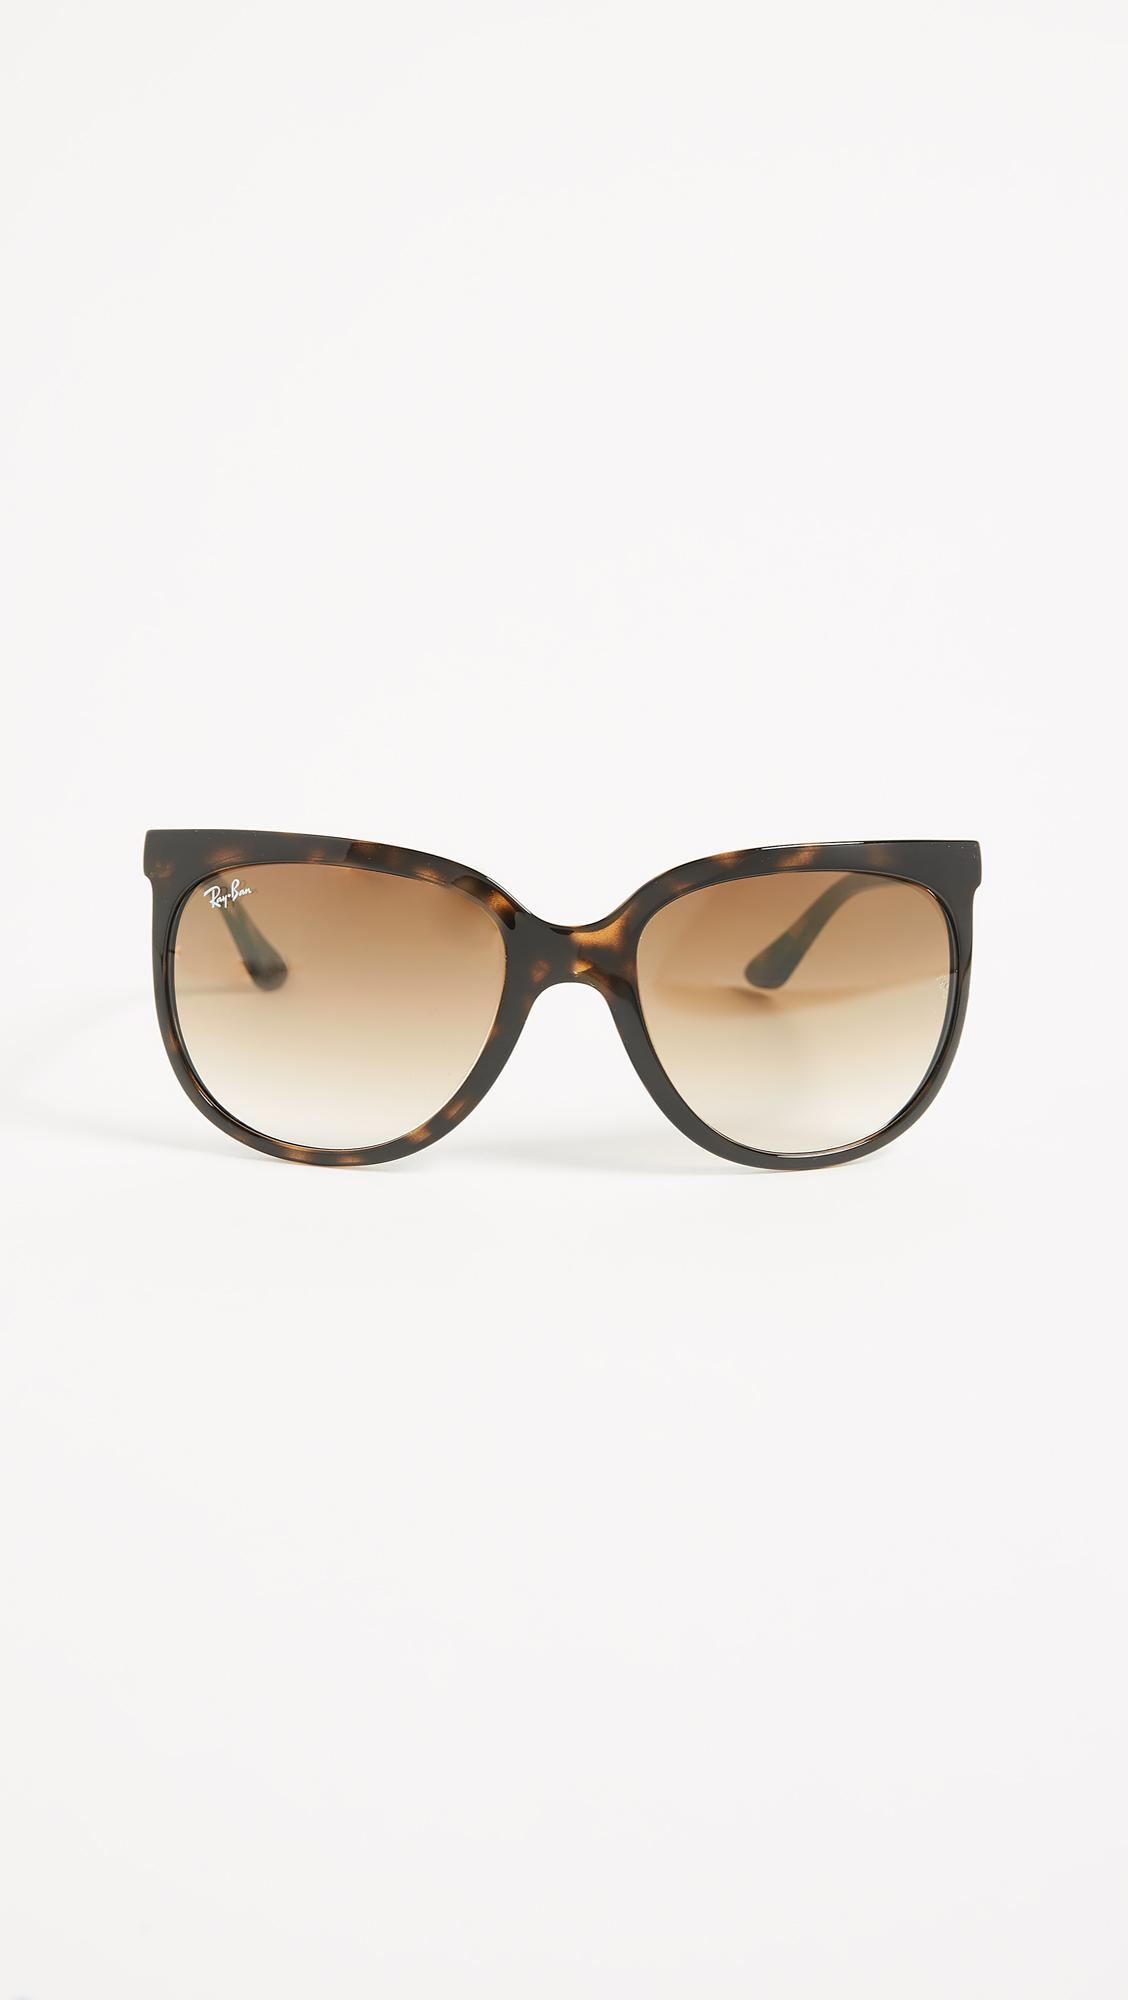 d78a705173 Lyst - Ray-Ban Rb4126 Cats 1000 Sunglasses in Brown - Save 14%